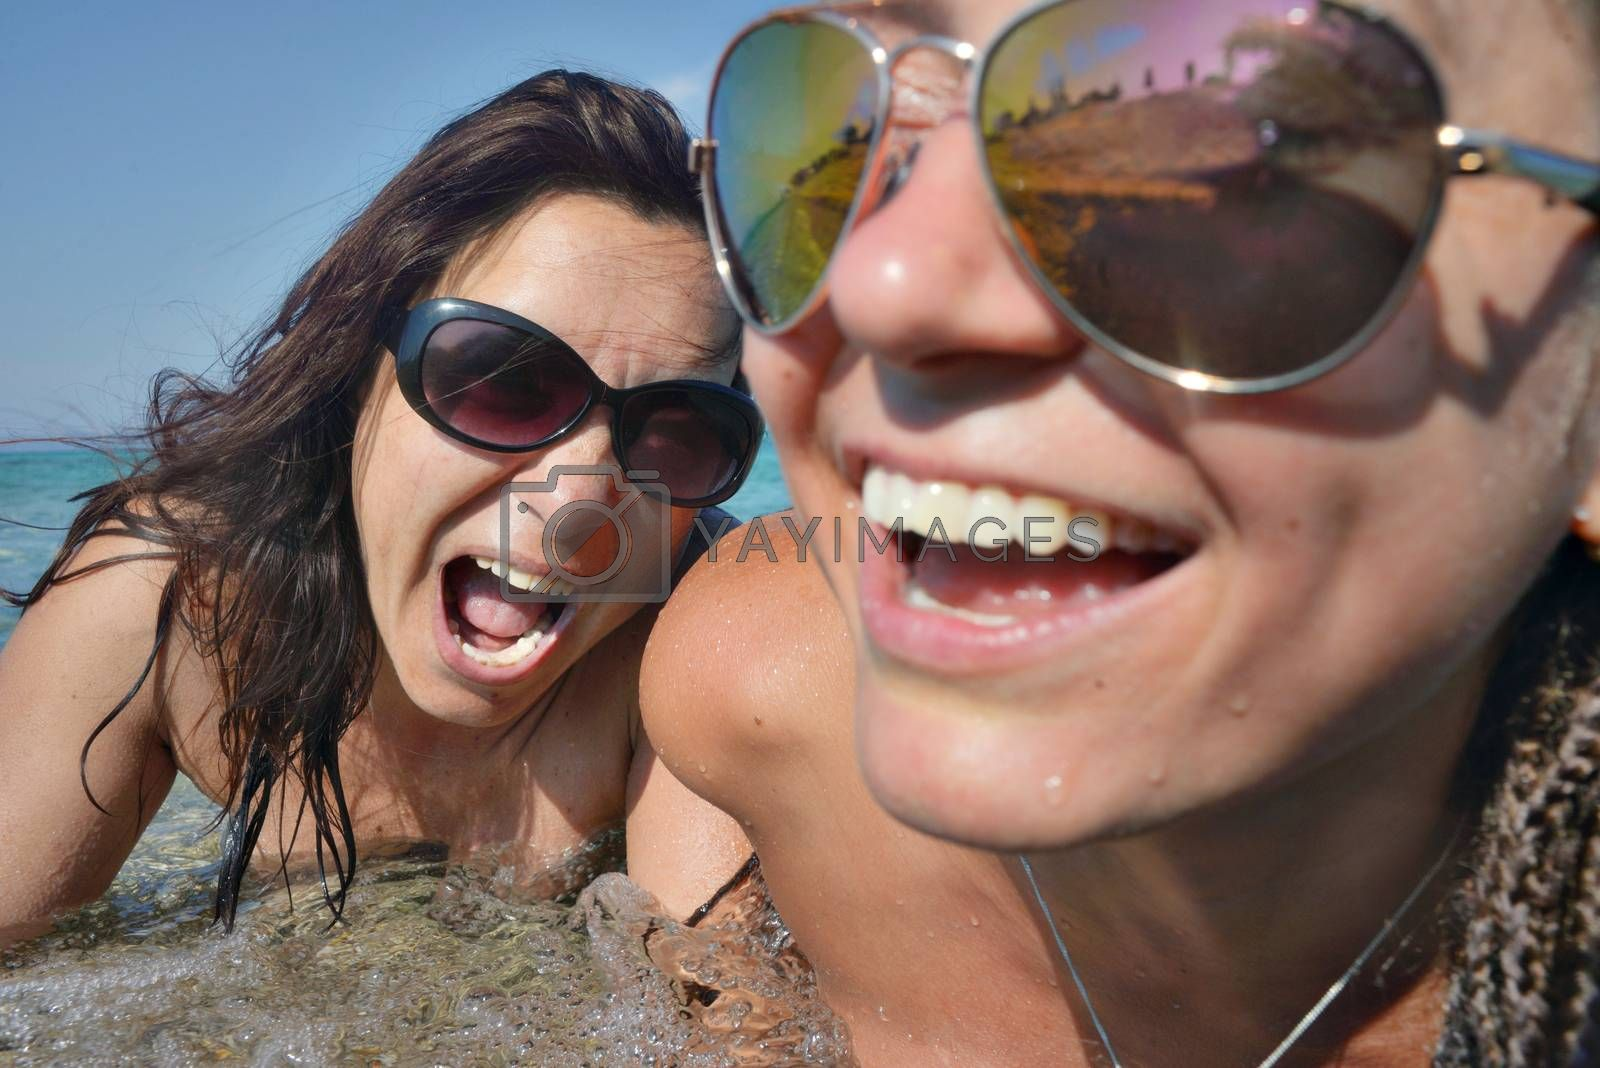 Two female faces - one smiling out of focus and one screaming in sea water.